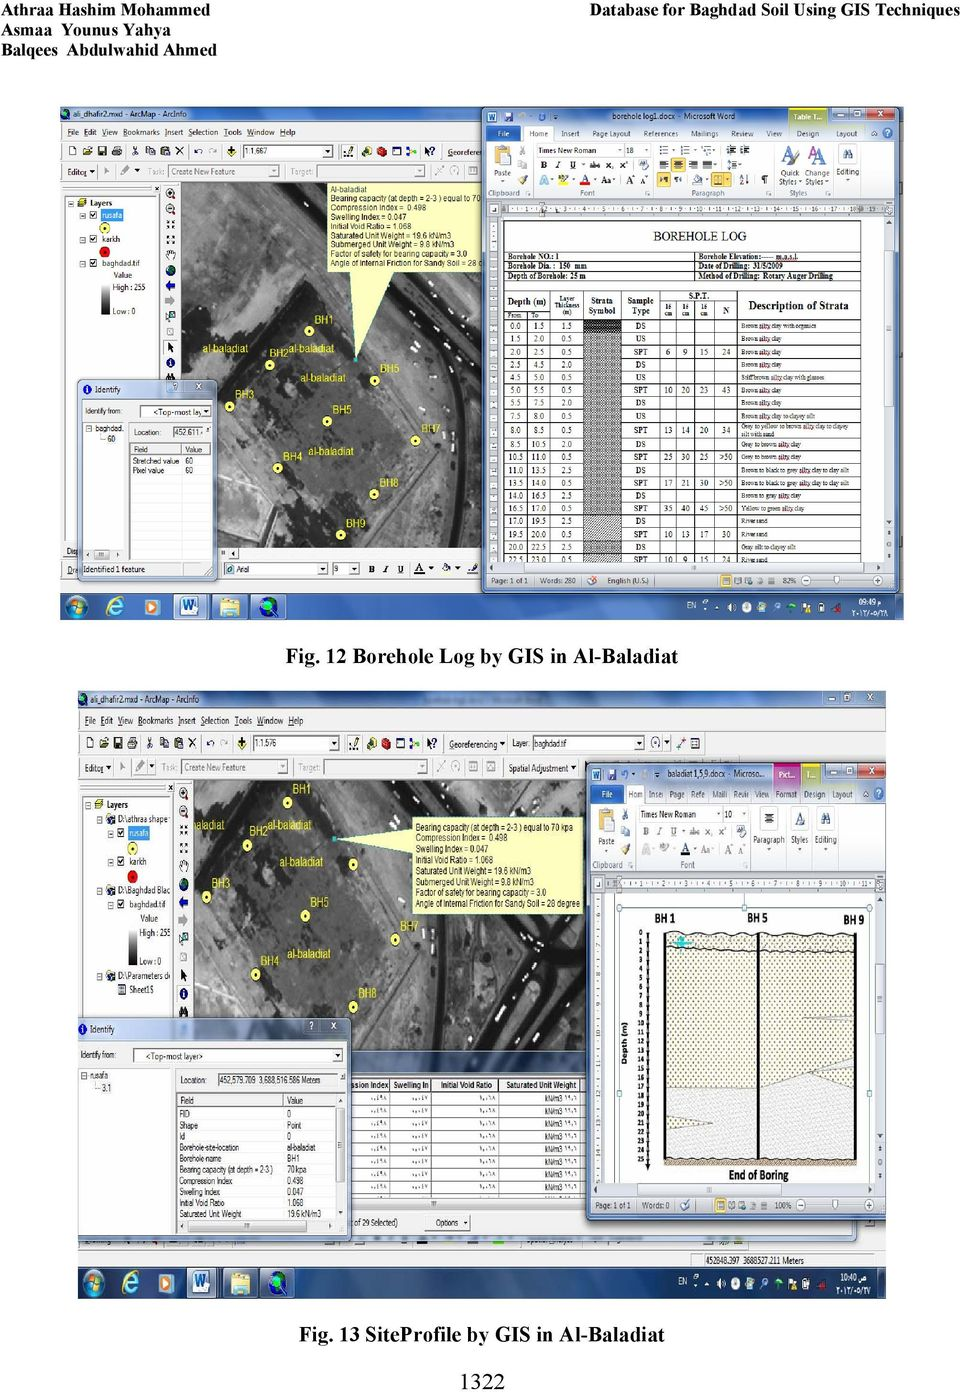 12 Borehole Log by GIS in Al-Baladiat